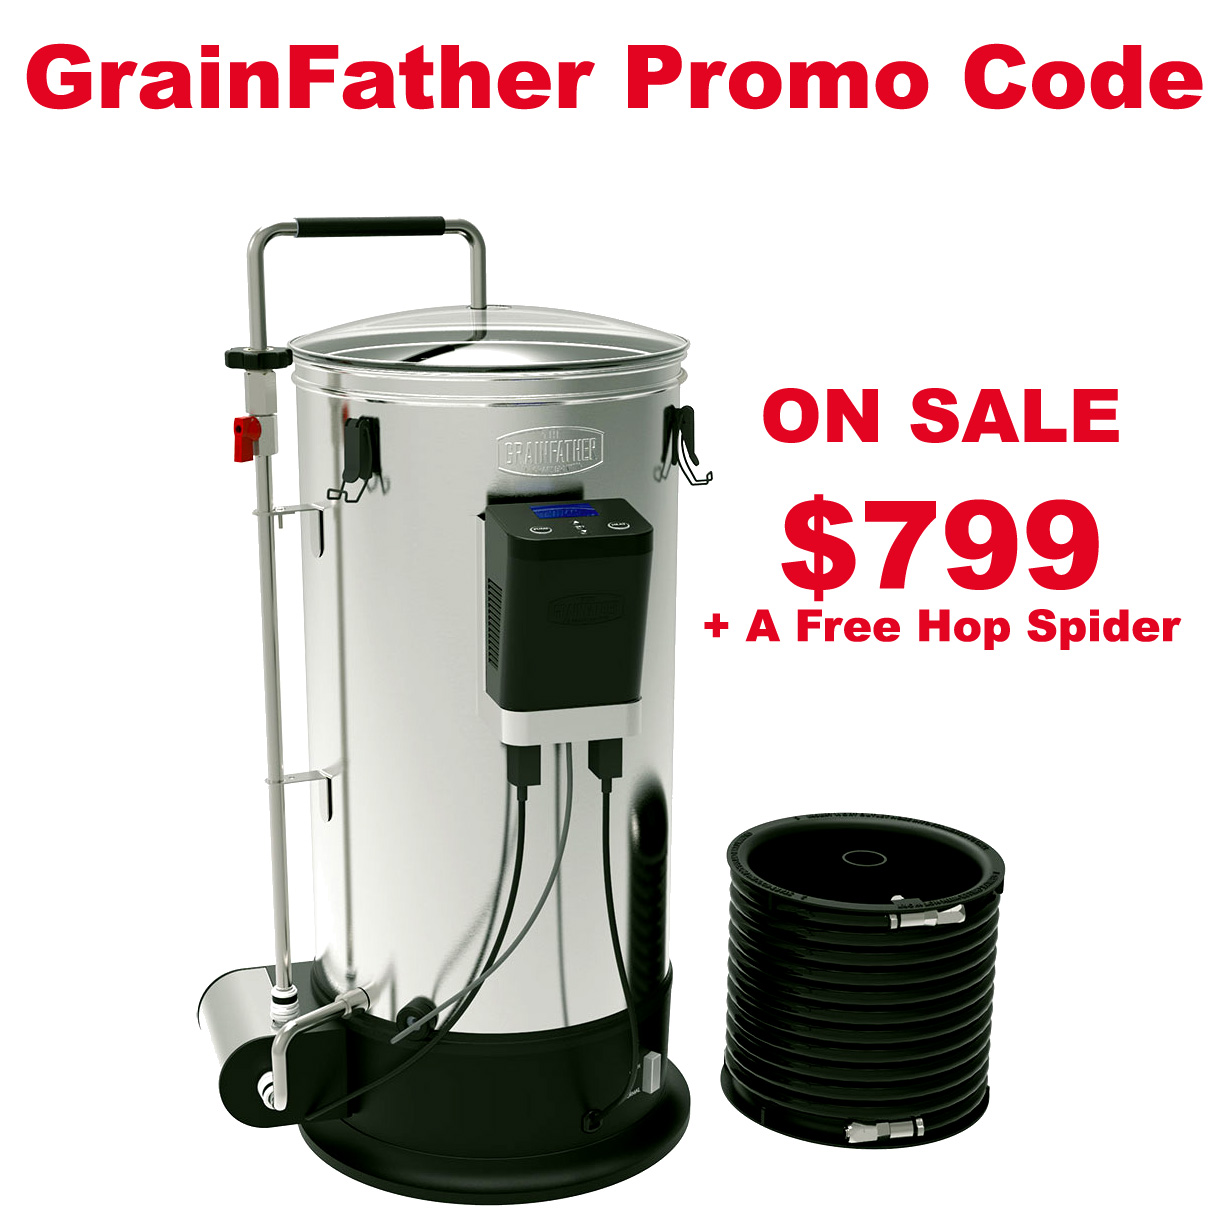 Get a New GrainFather Connect for Just $799 + A Free Hop Spider Coupon Code